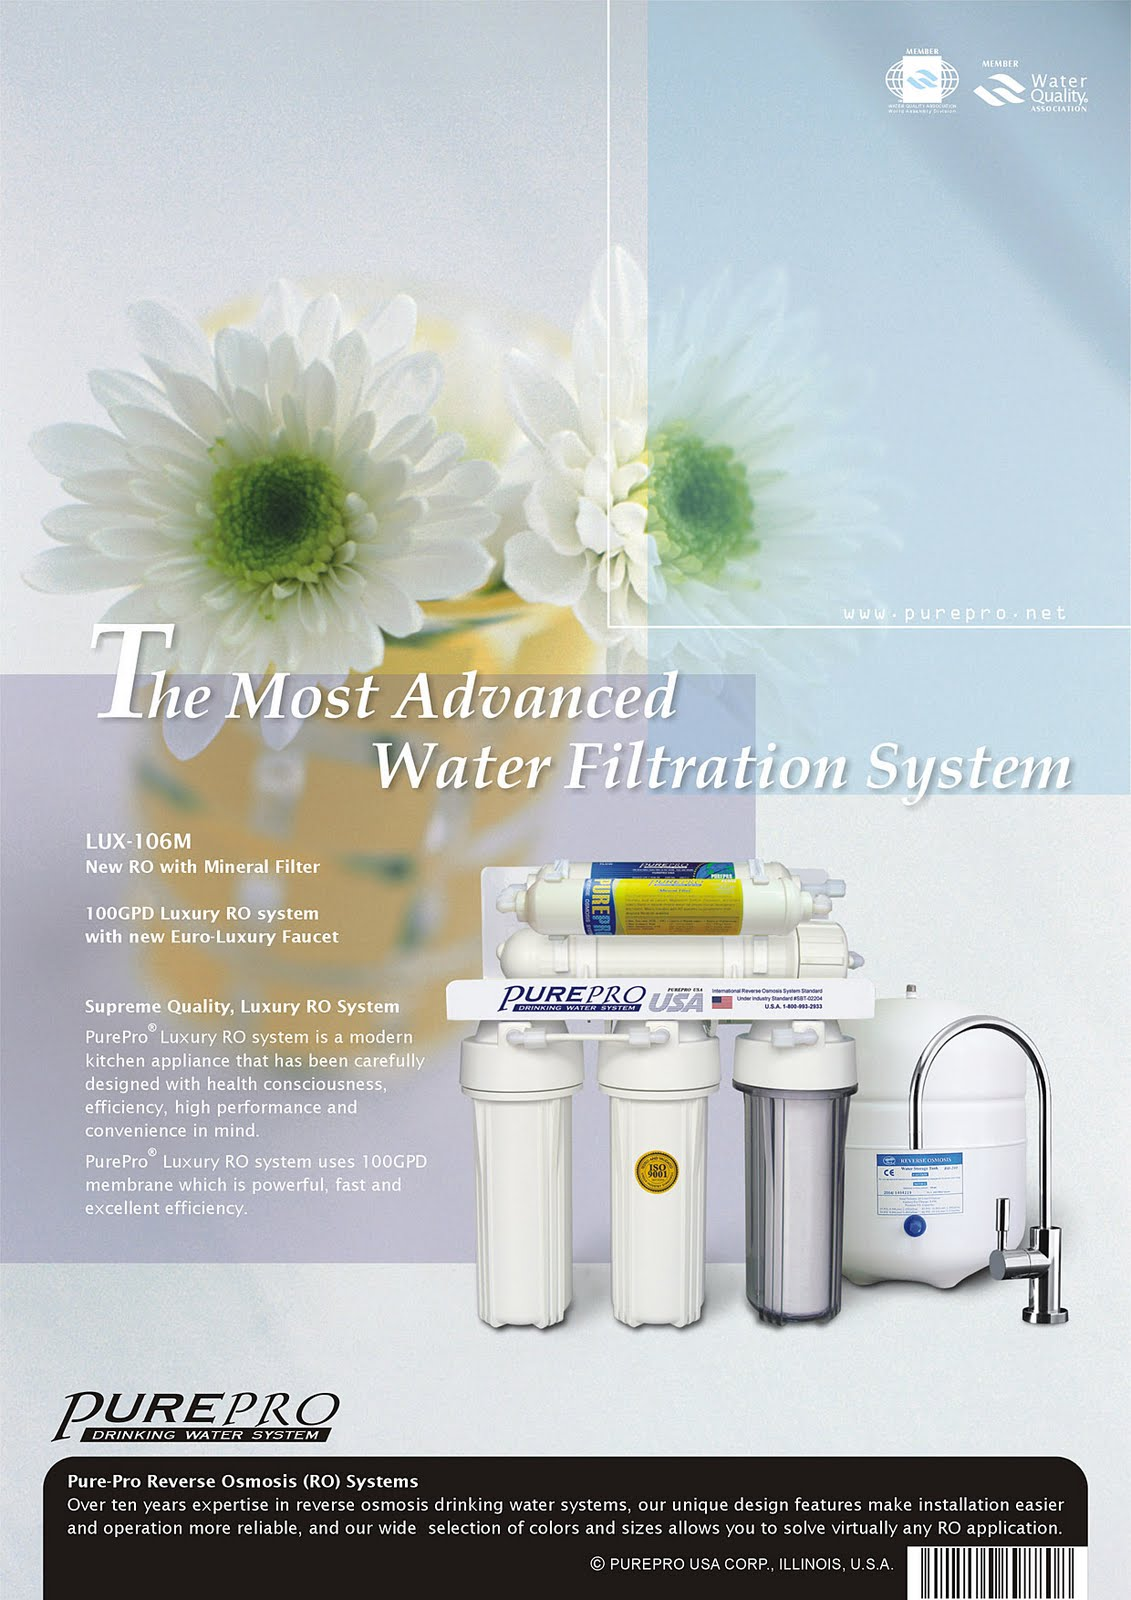 PurePro® LUX-106M Reverse Osmosis Water Filter System